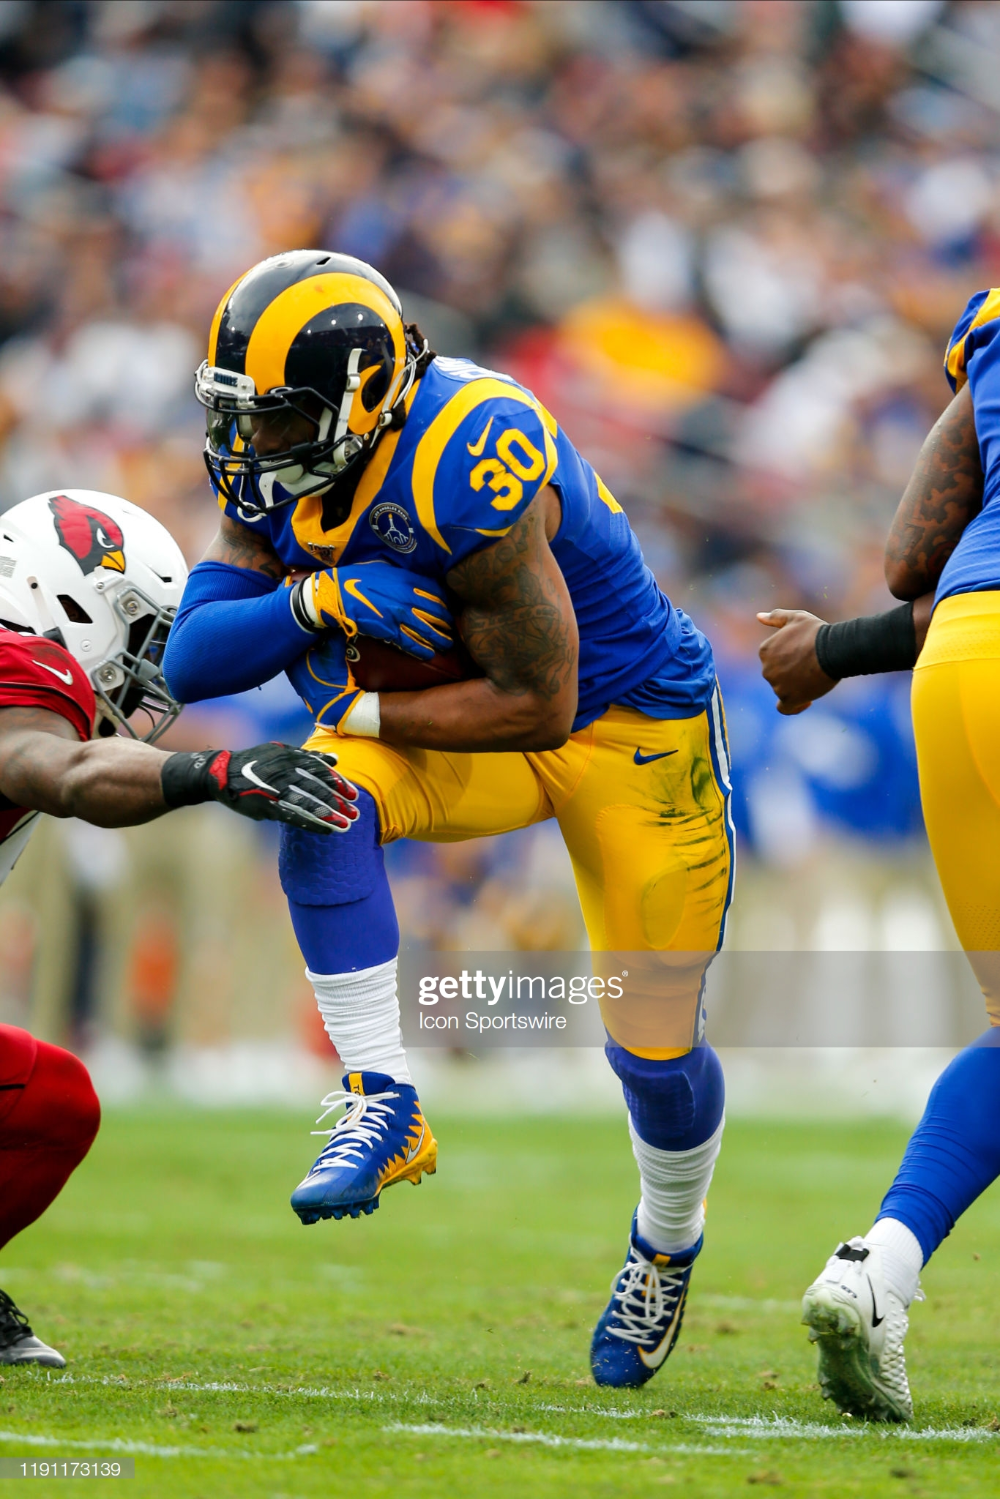 Los Angeles Rams Running Back Todd Gurley Runs The Ball For A Gain In 2020 Todd Gurley Los Angeles Rams Running Back